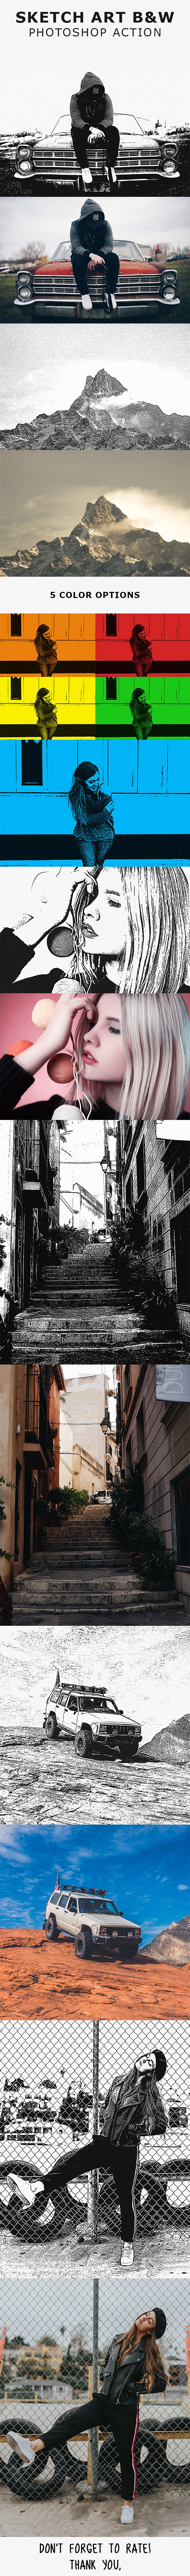 Sketch Art B&W Photoshop Action - Photo Effects Actions